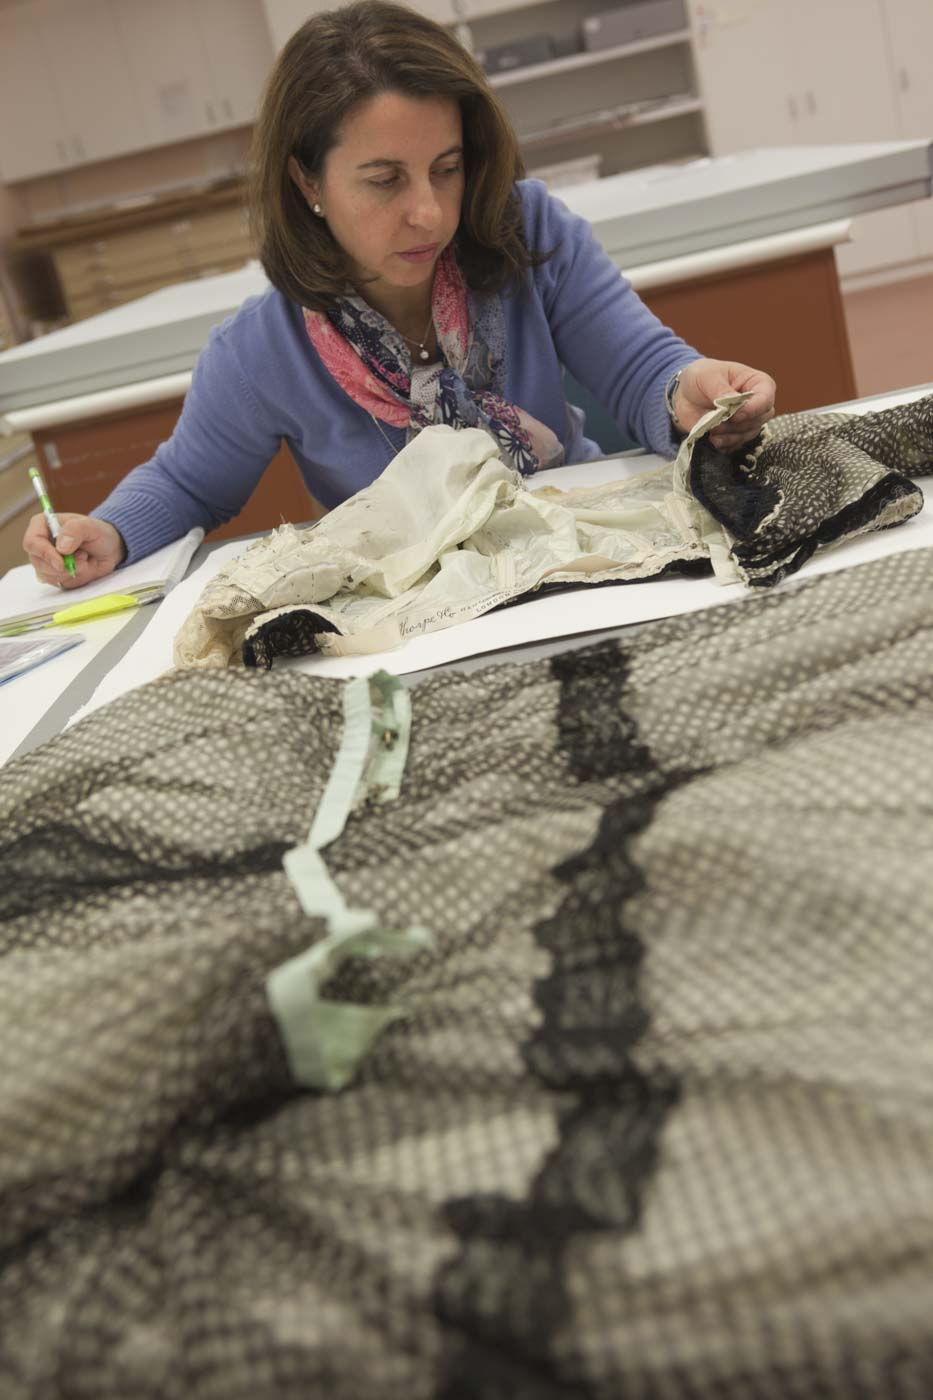 Conservator working on a dress and making notes. - click to view larger image